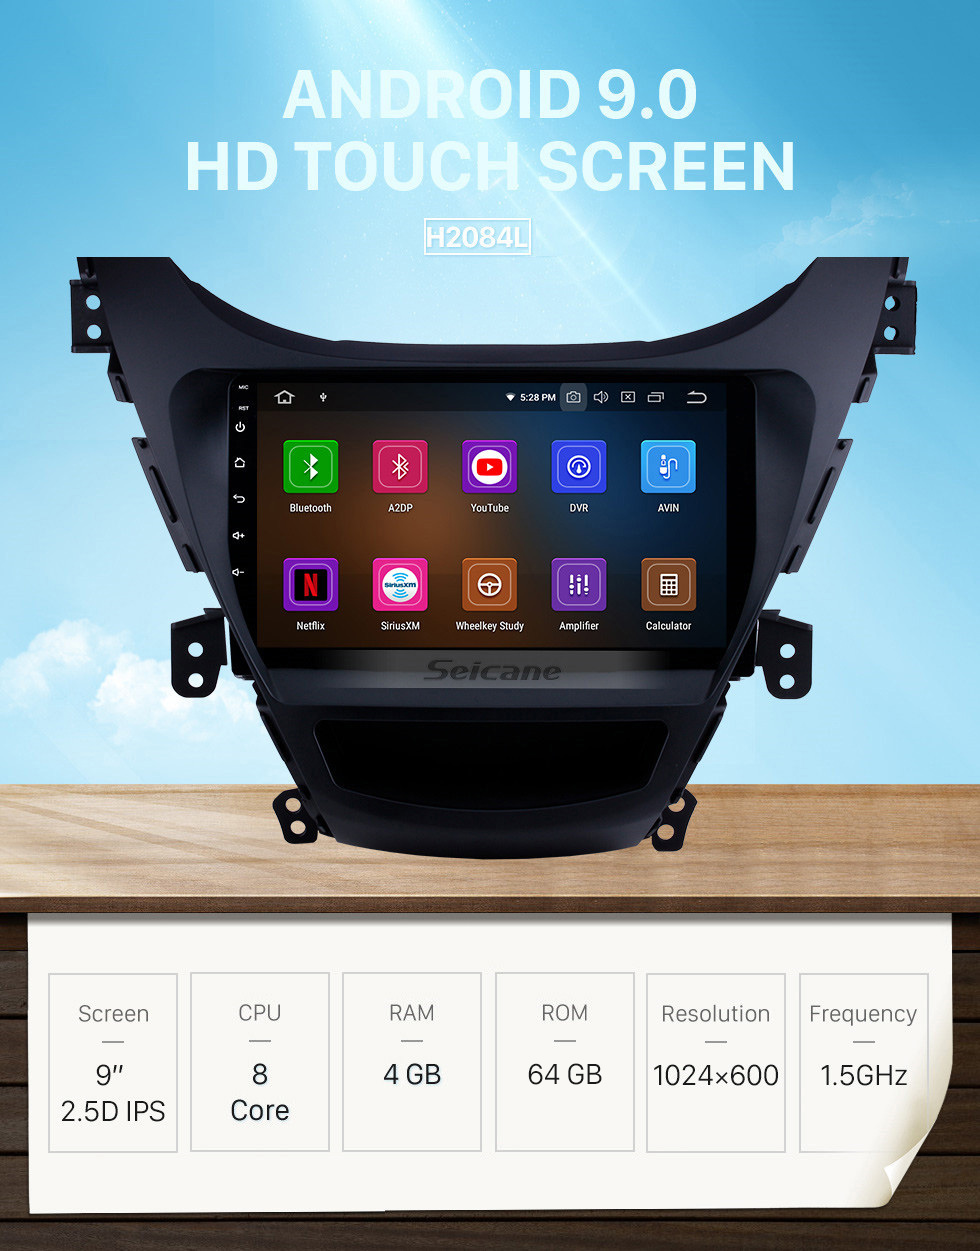 Seicane 9 inch Android 9.0 DVD GPS Stereo for2011 2012 2013 Hyundai Elantra with Radio Bluetooth Music Mirror Link OBD2 Backup Camera Steering Wheel Control